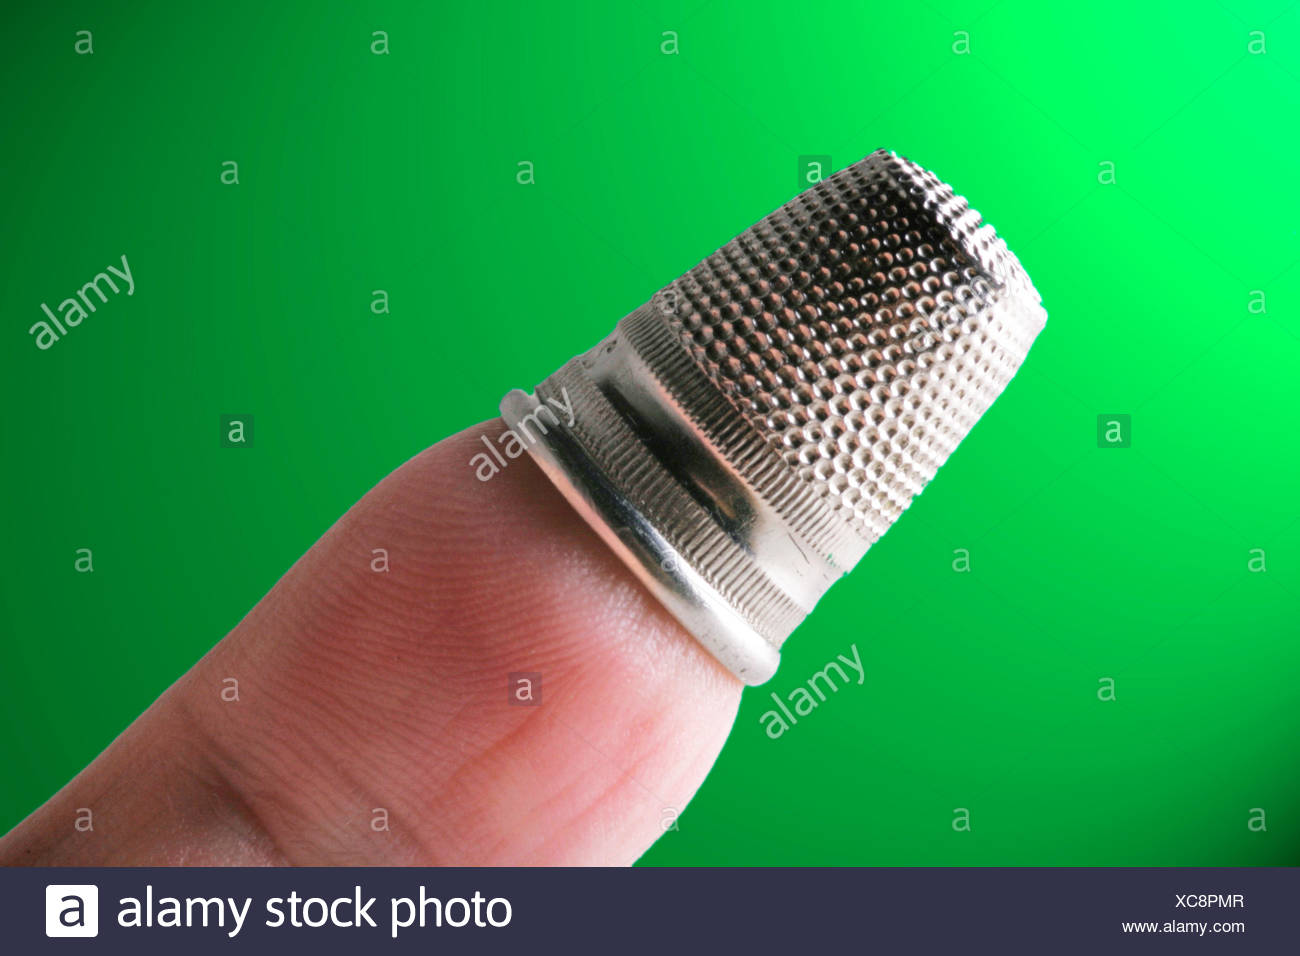 silvery thimble on a finger - Stock Image